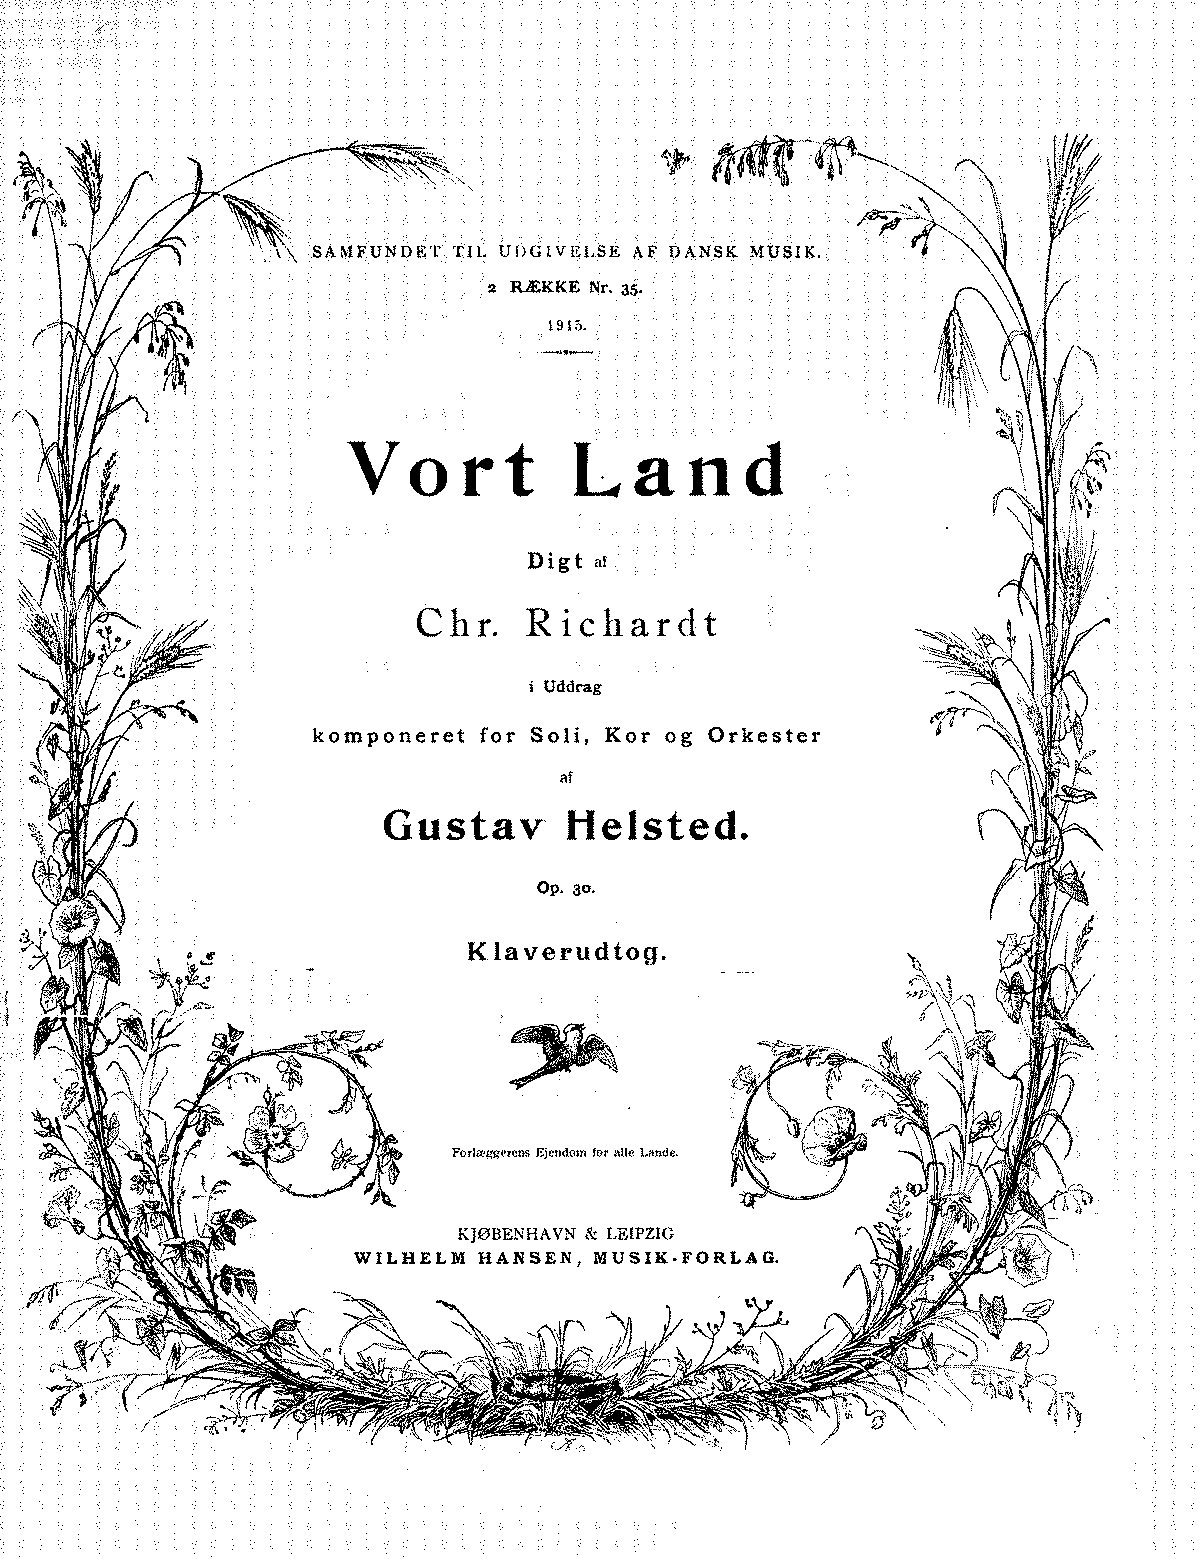 PMLP266559-Helsted - Vort Land Op30 VS unc.pdf